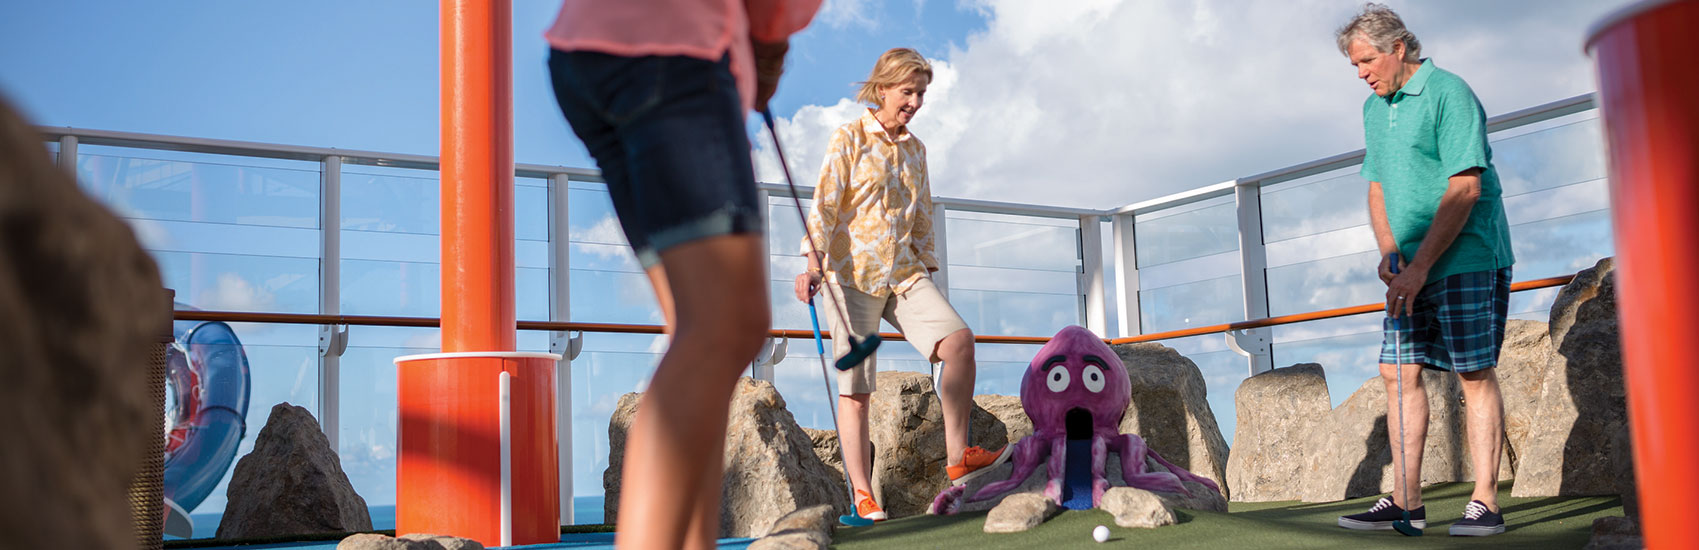 Celebrate Family with Norwegian Cruise Line!